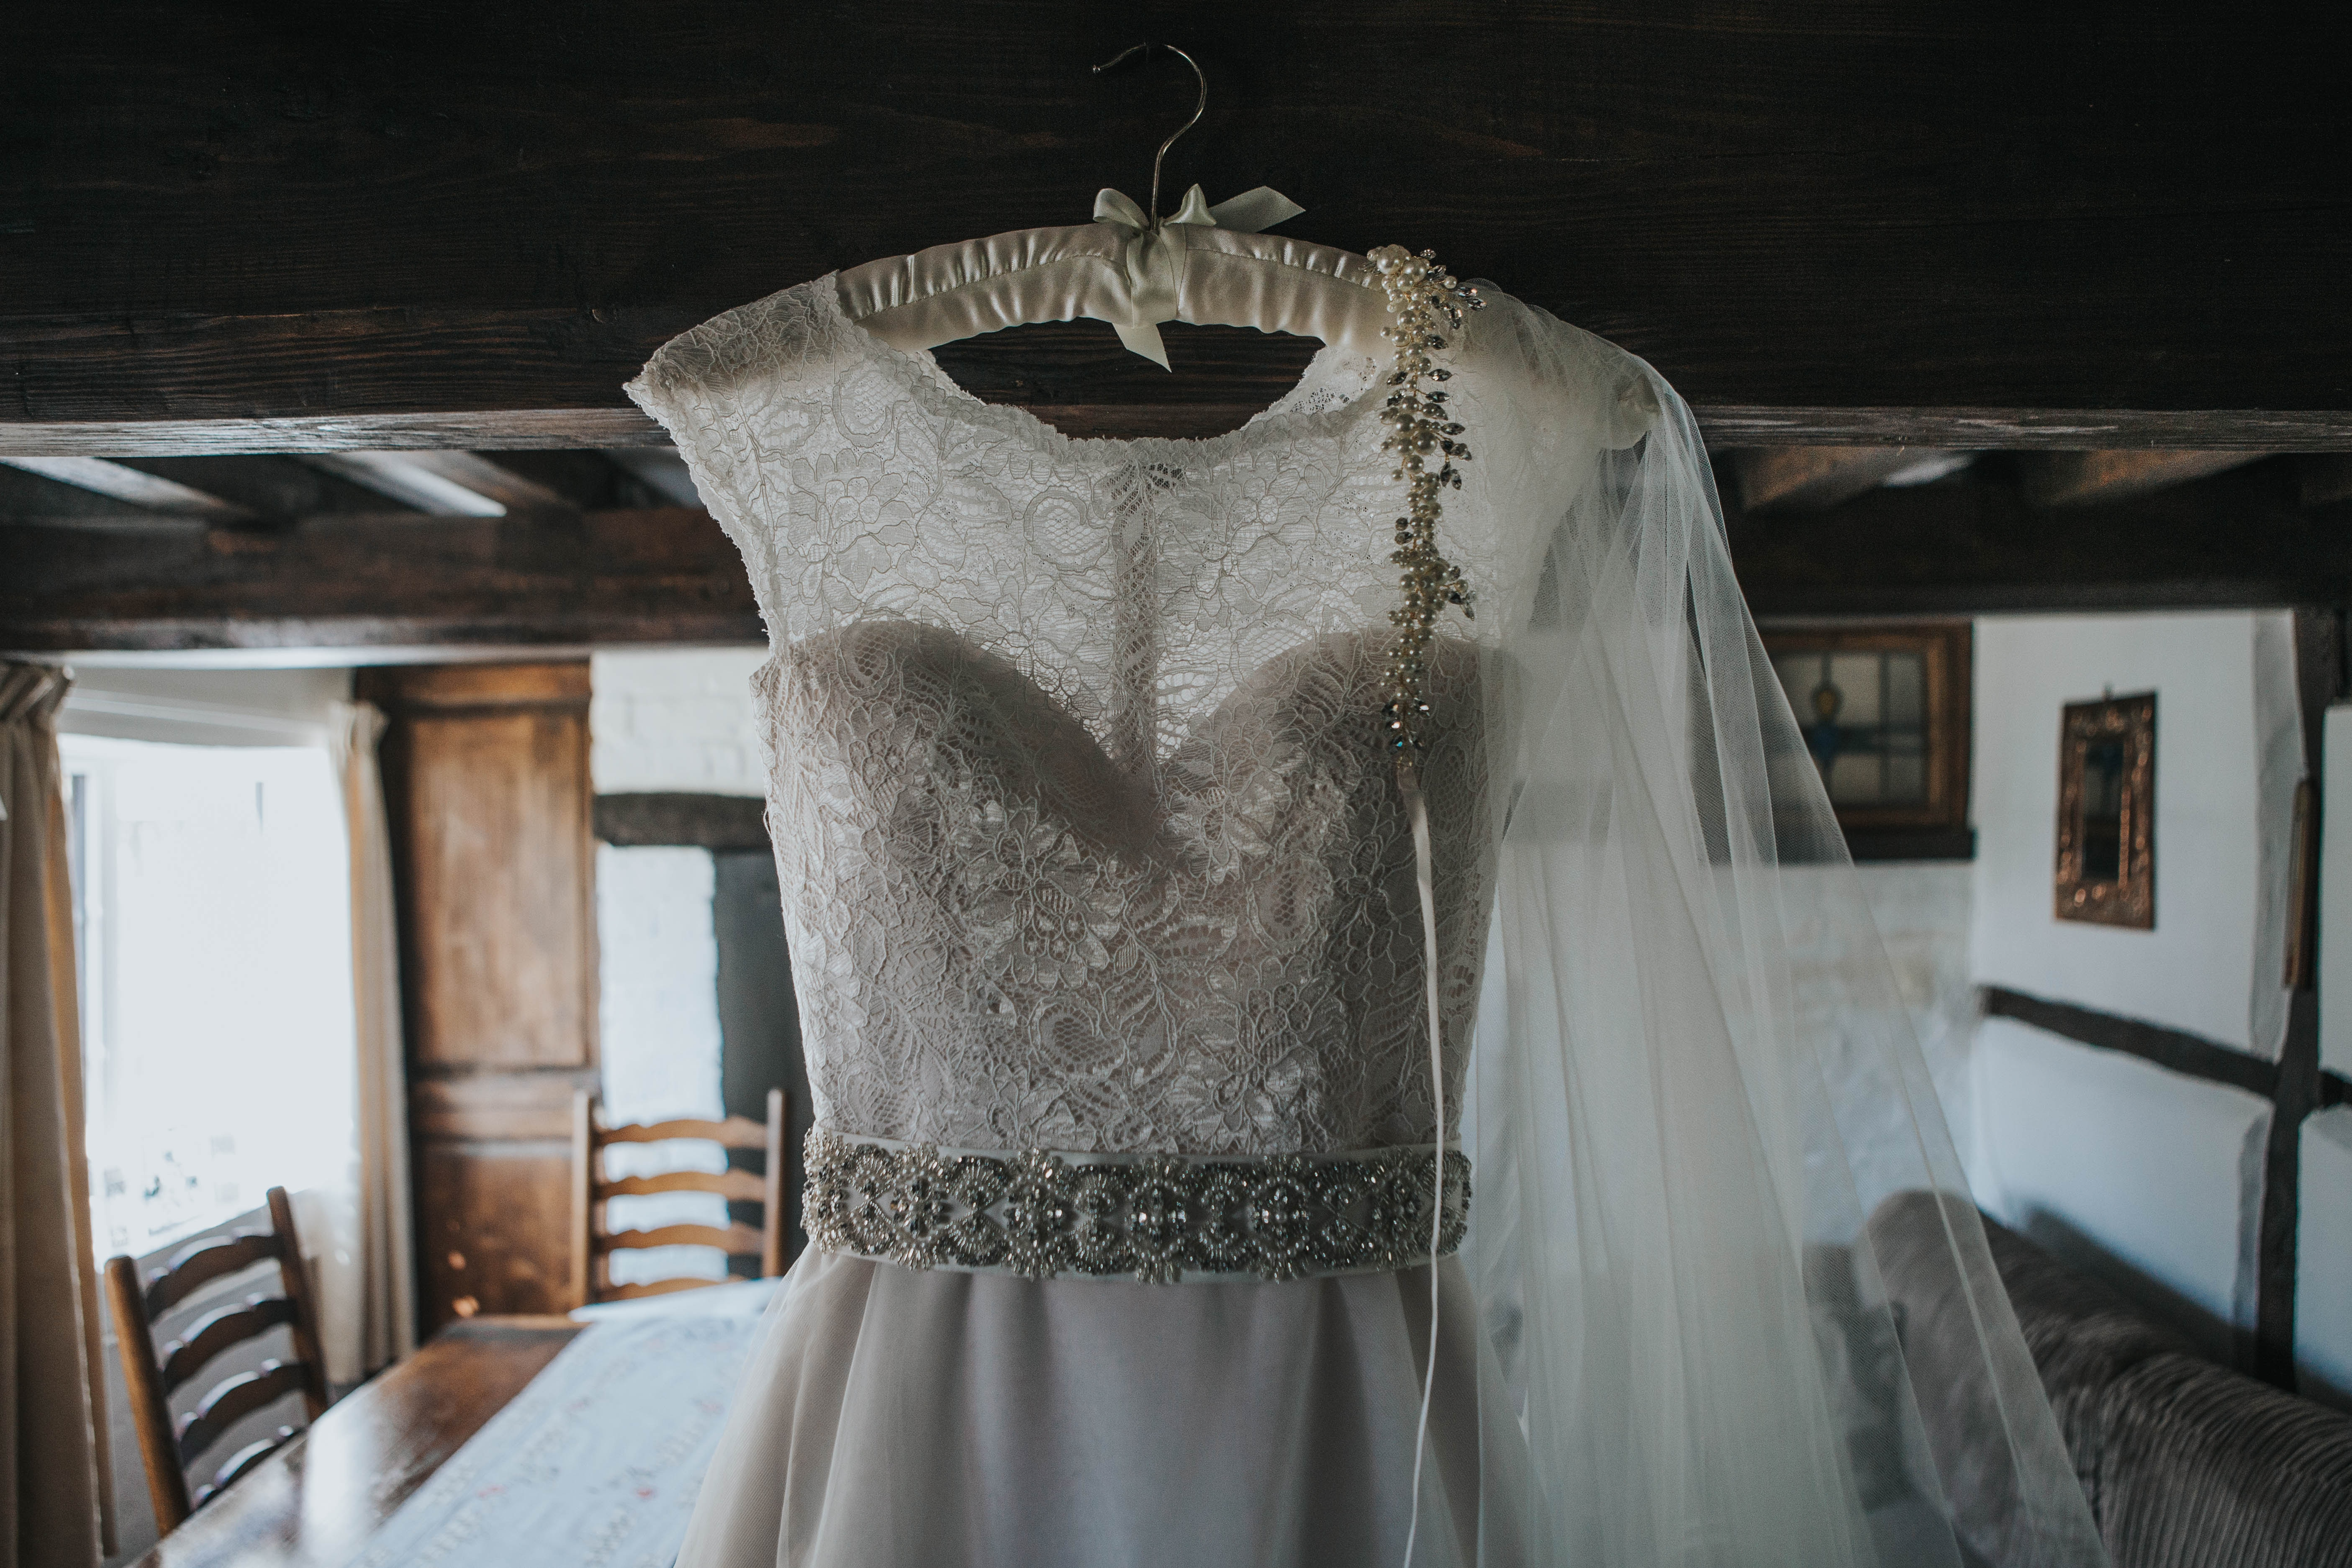 Ask these questions when shopping for the wedding dress las vegas wedding gown is not an easy task not with the myriad of options out there how do you actually know which one is the right one ask yourself these solutioingenieria Image collections